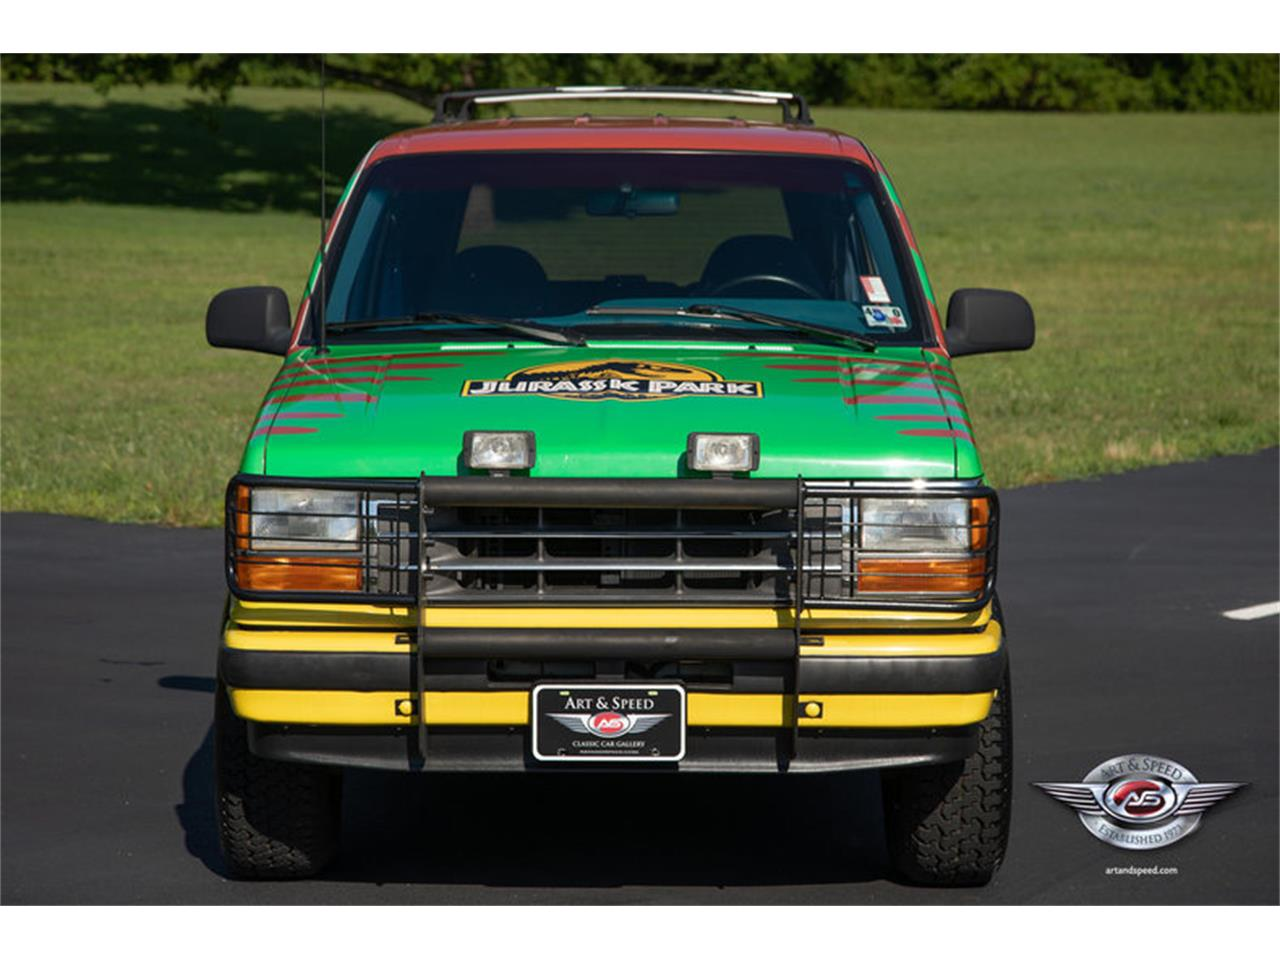 Large Picture of 1993 Explorer - $12,900.00 Offered by Art & Speed - NRIV